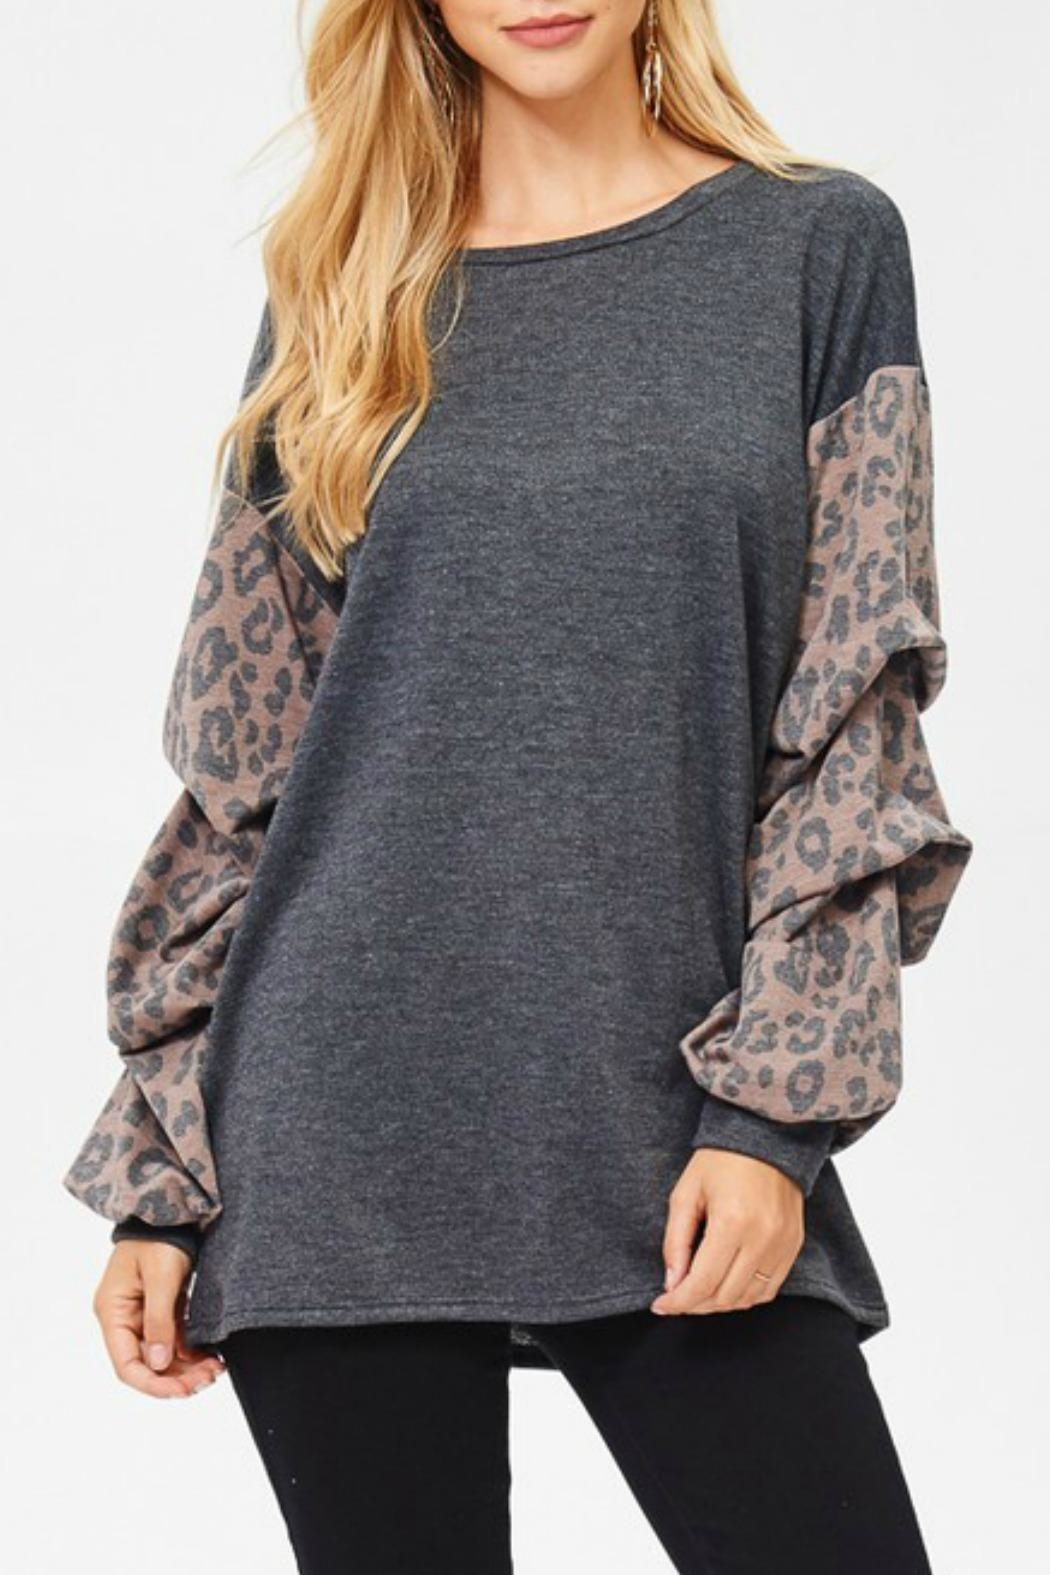 Comme Toi Animal-Print Sleeve Top - Main Image